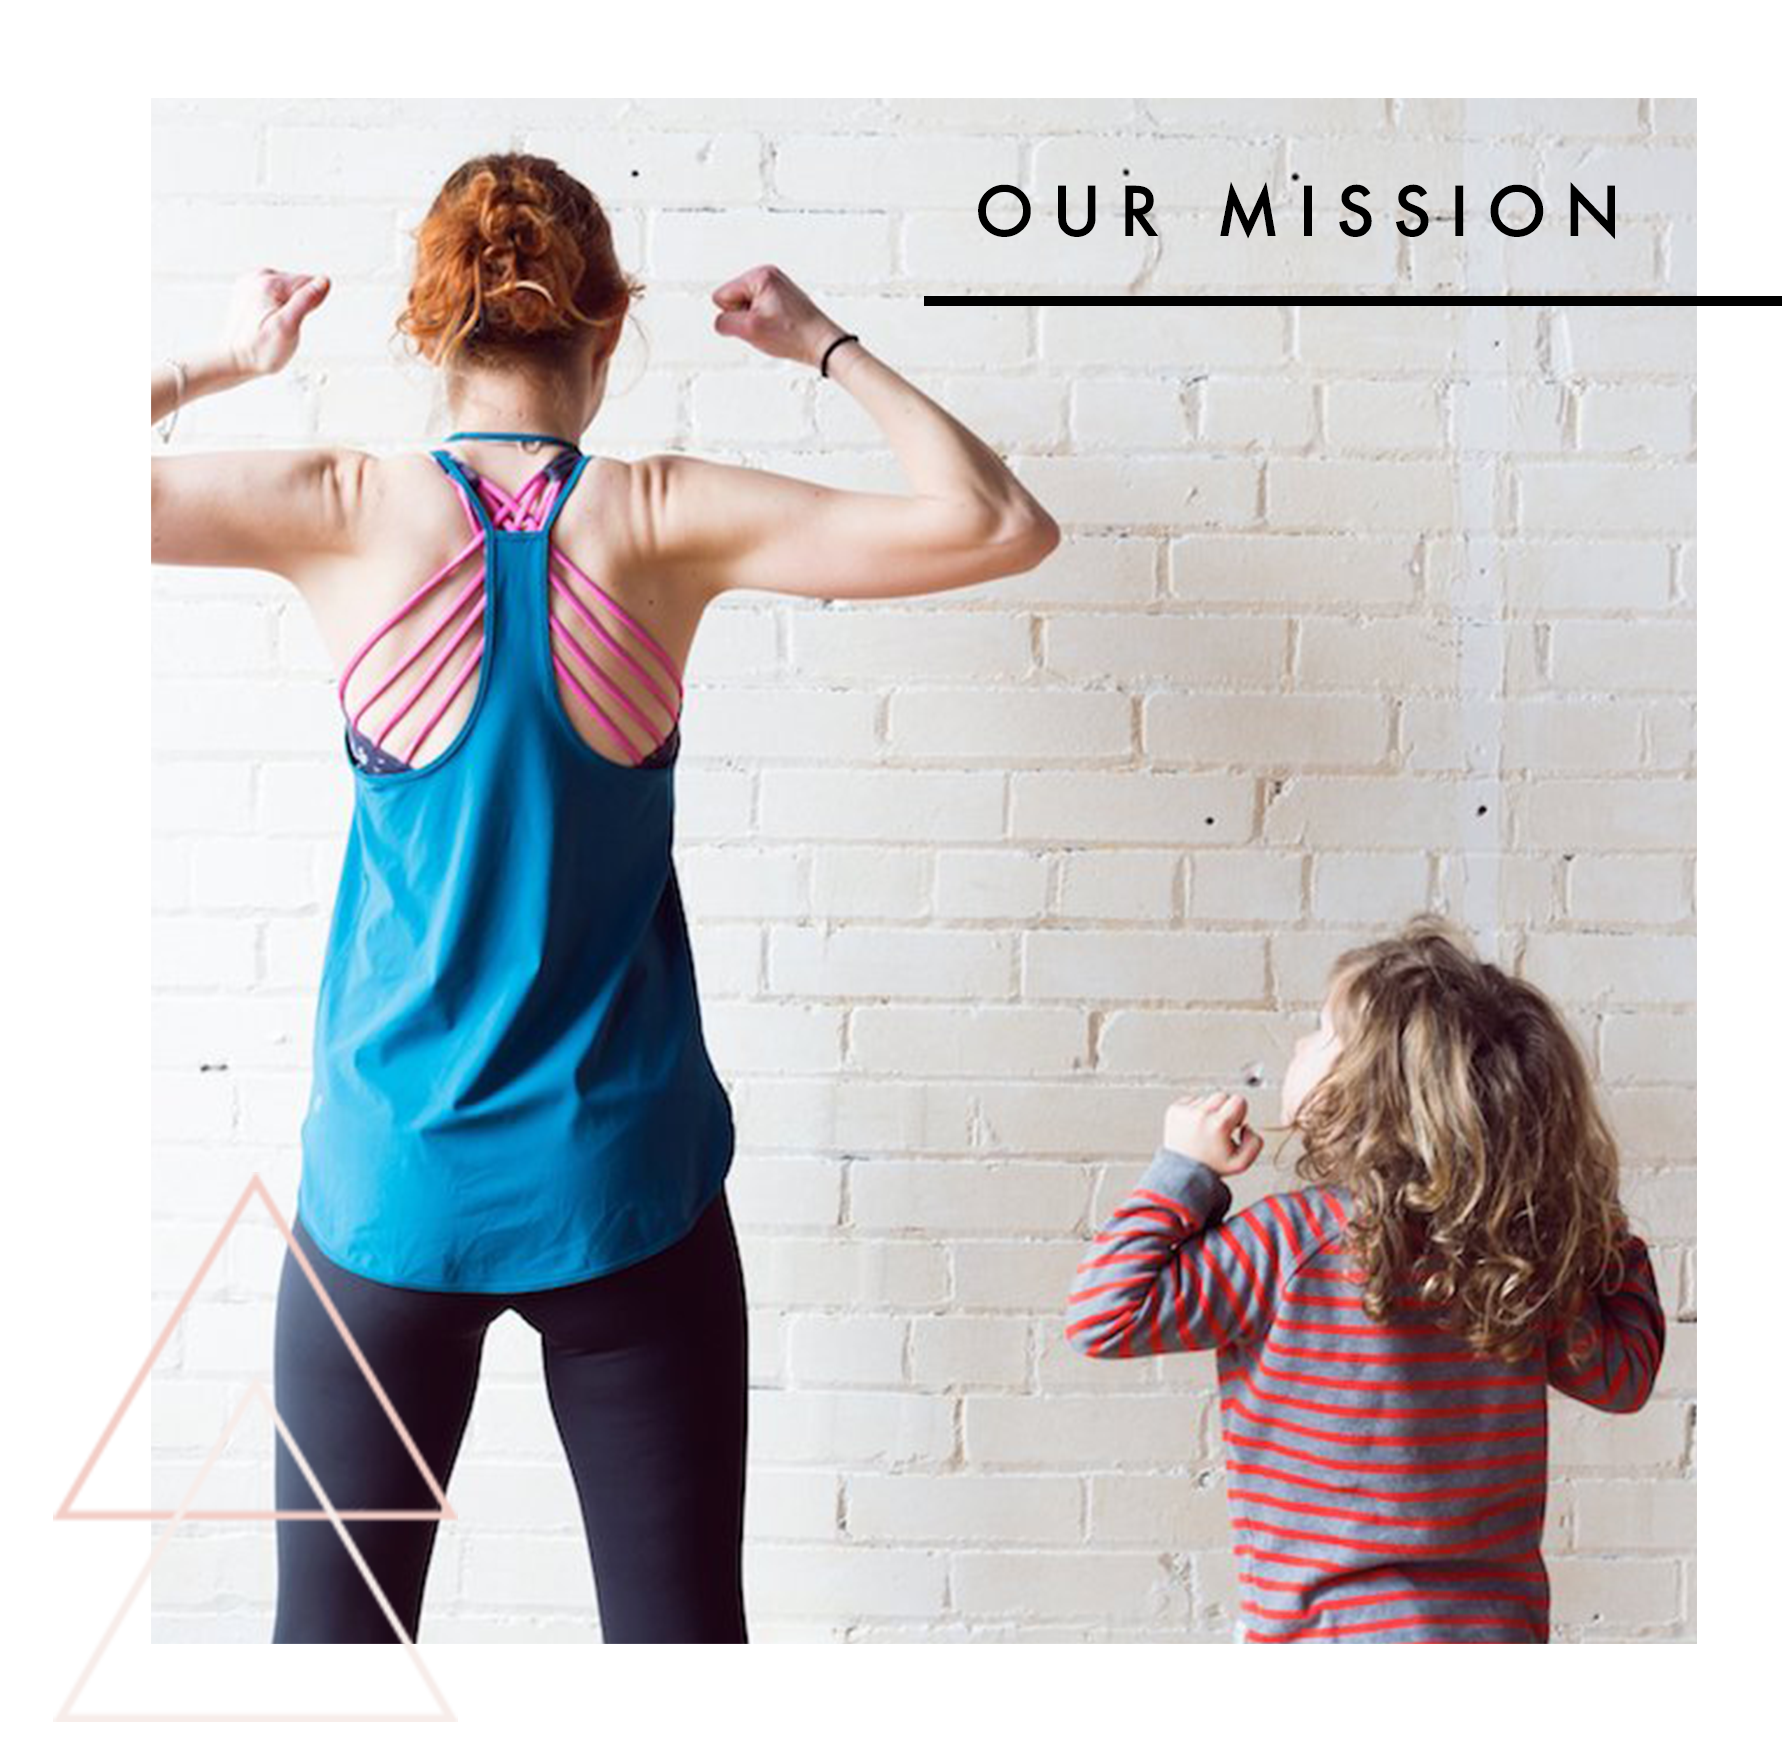 - To provide women and girls with the tools to practice wellness, mindfulness and self-awareness in order to foster self-confidence and personal and global responsibility.